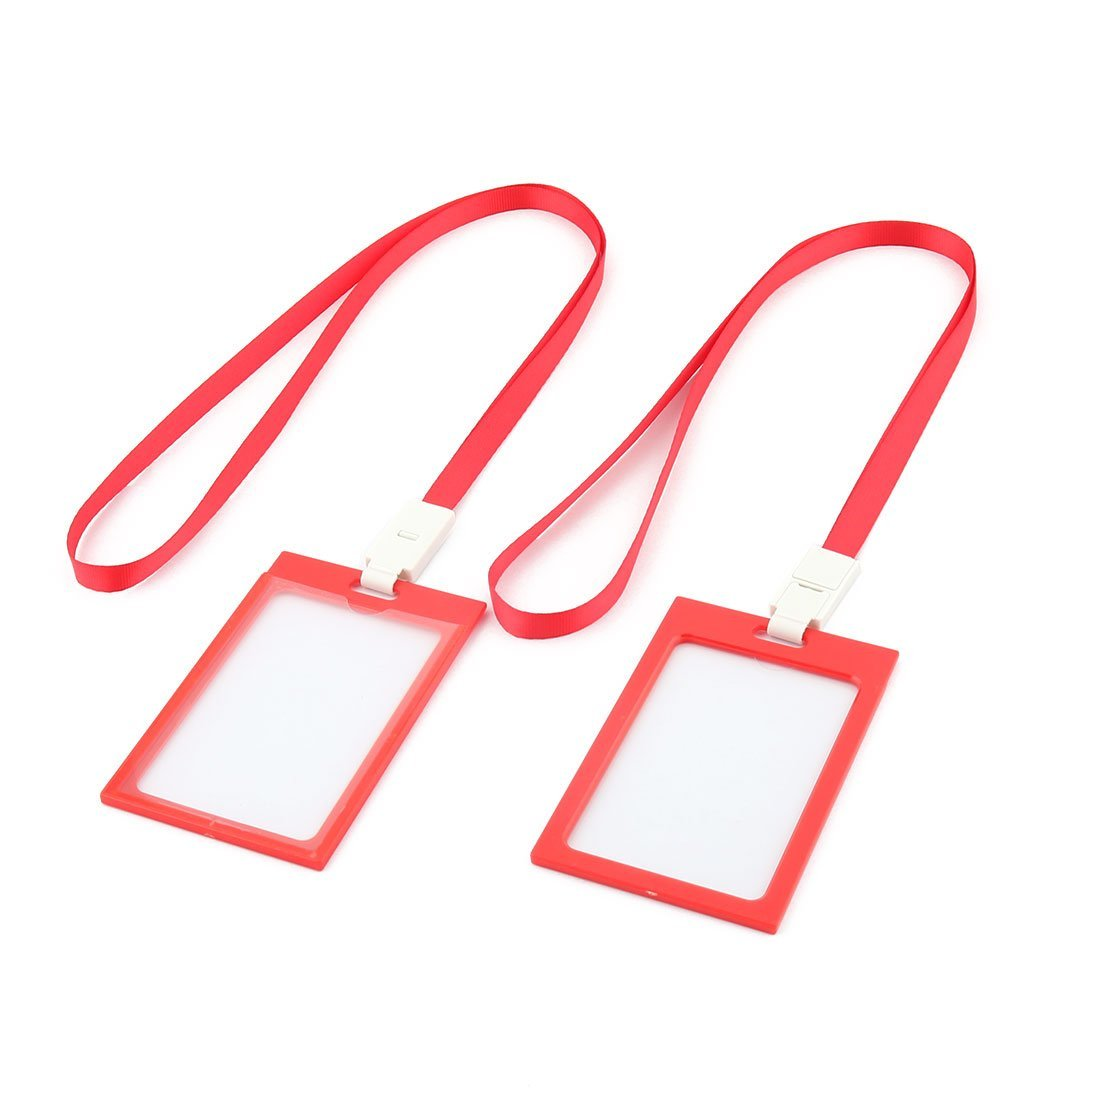 DealMux Office School Neck String Lanyard Vertical ID Card Holder Case Container 5 Pcs Red